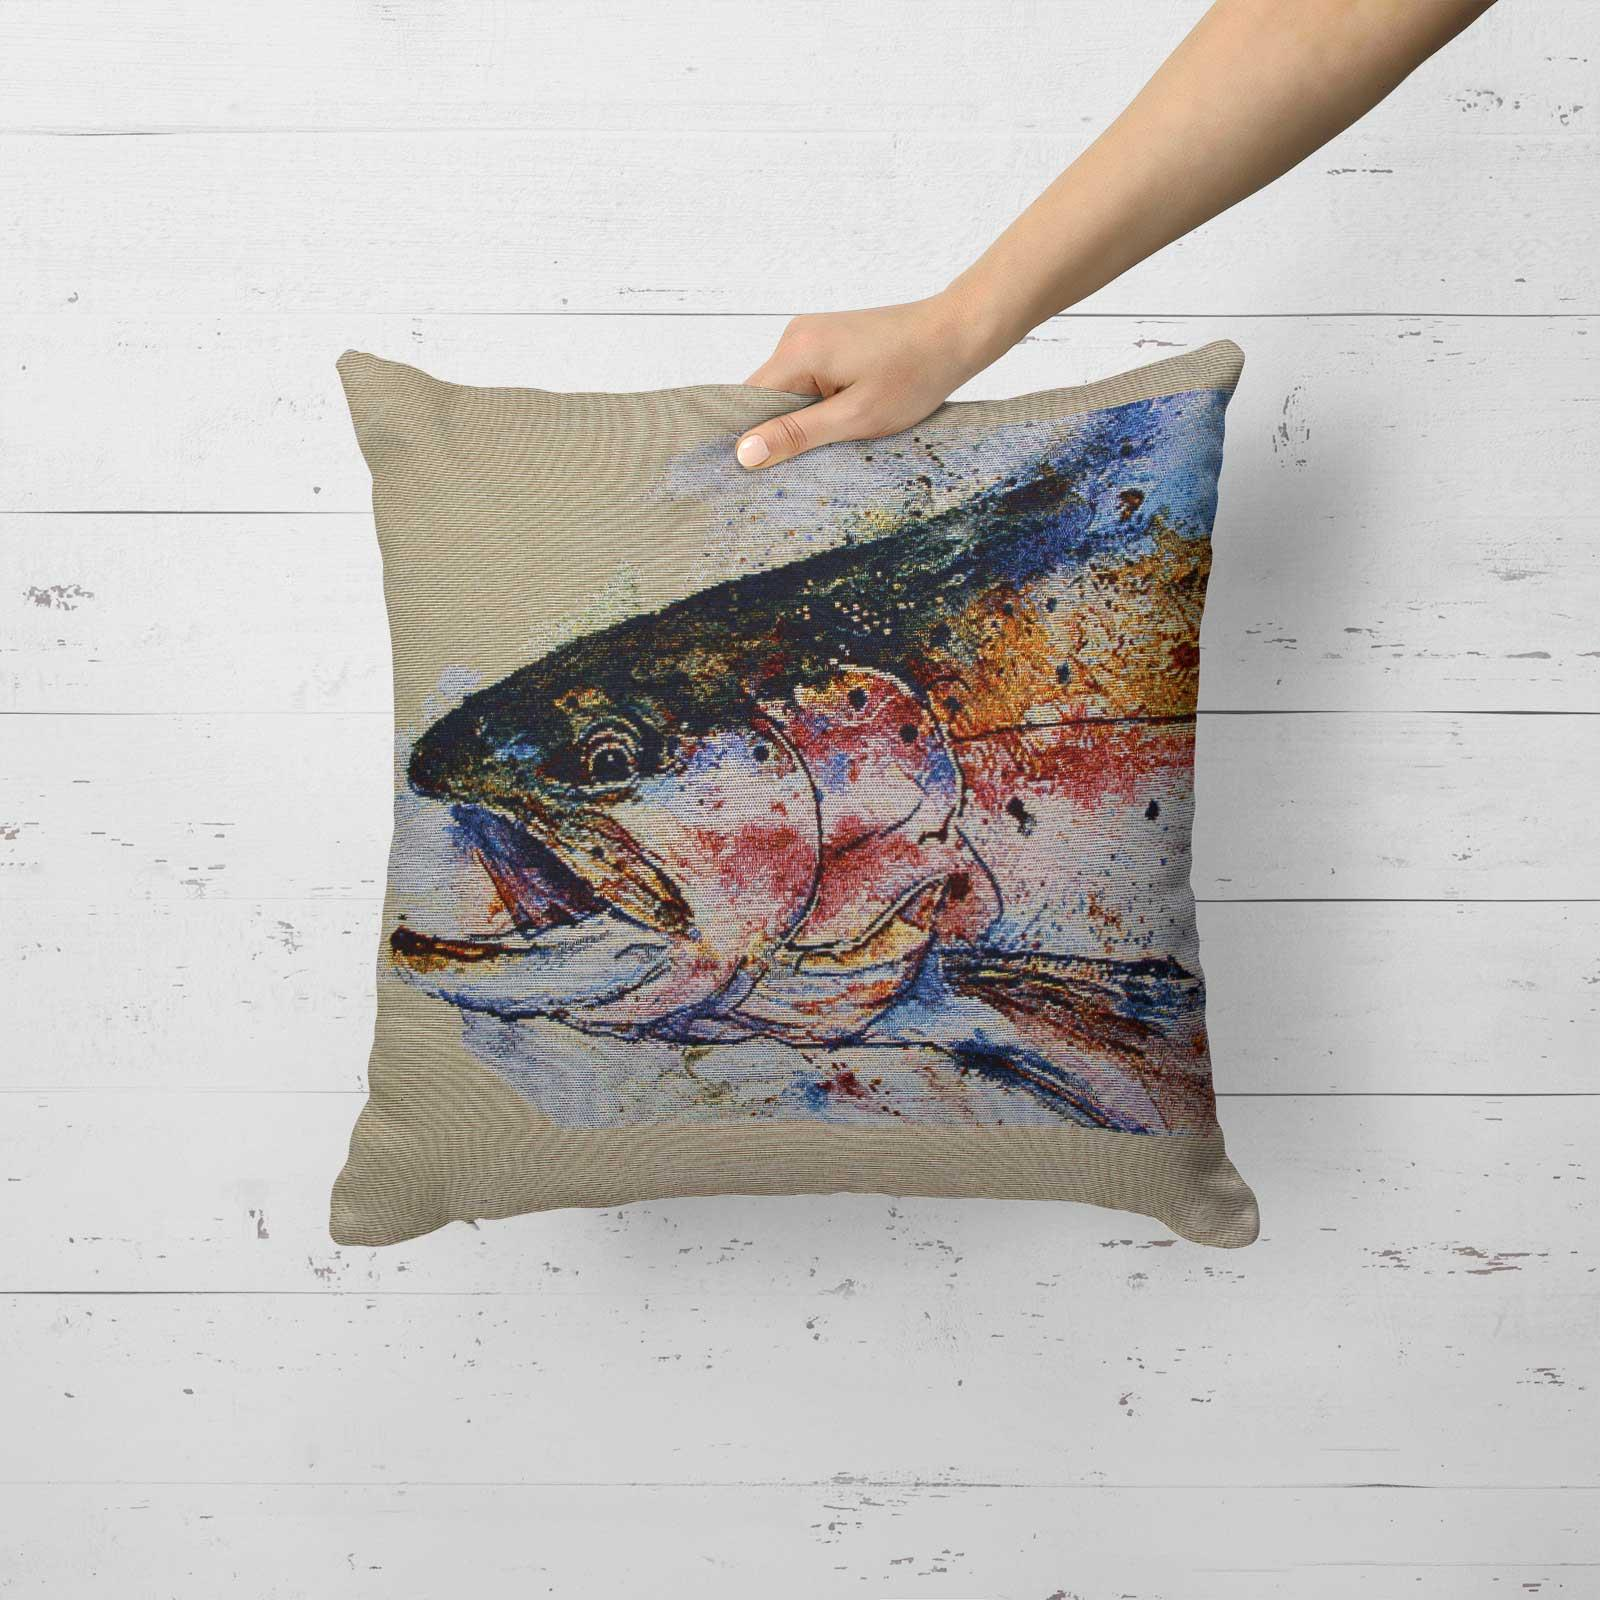 Tapestry-Cushion-Covers-Vintage-Pillow-Cover-Collection-18-034-45cm-Filled-Cushions thumbnail 217